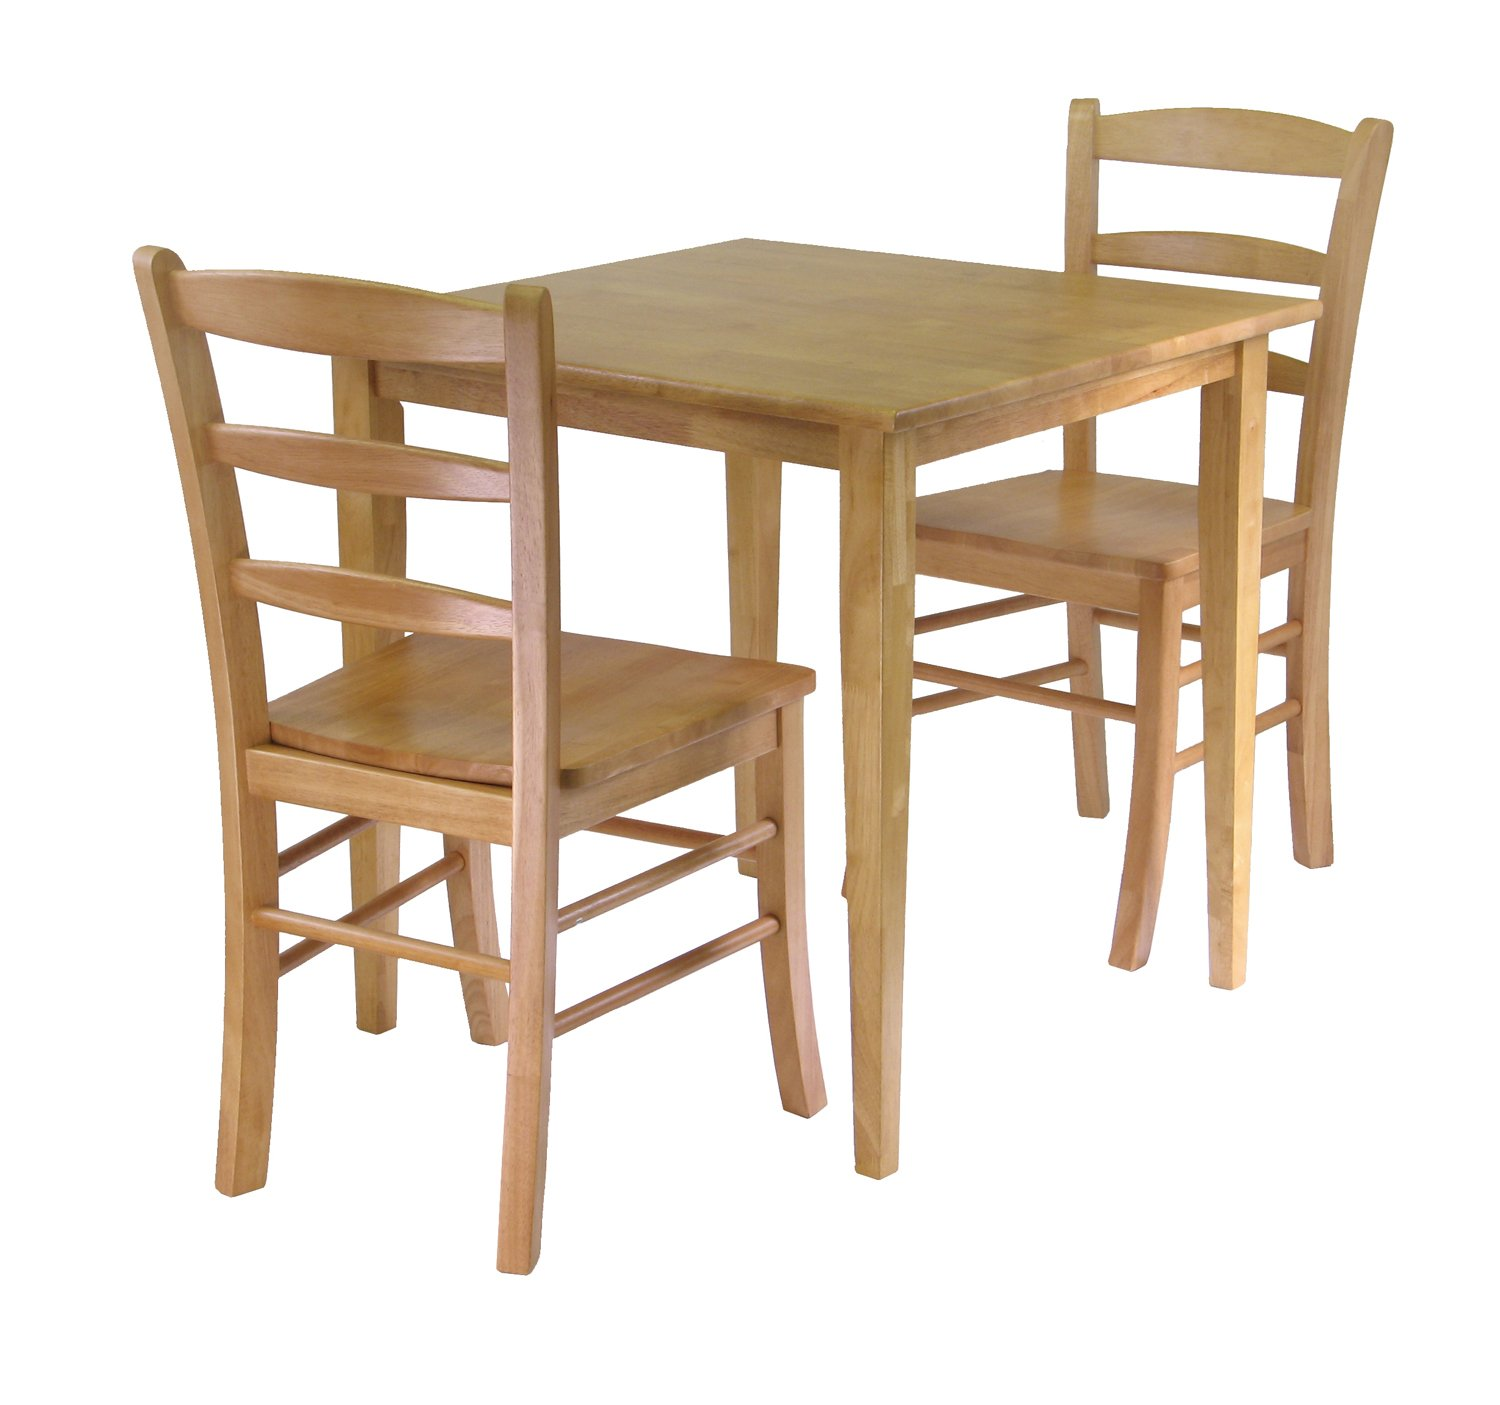 Small kitchen table sets for Kitchen table sets with bench and chairs